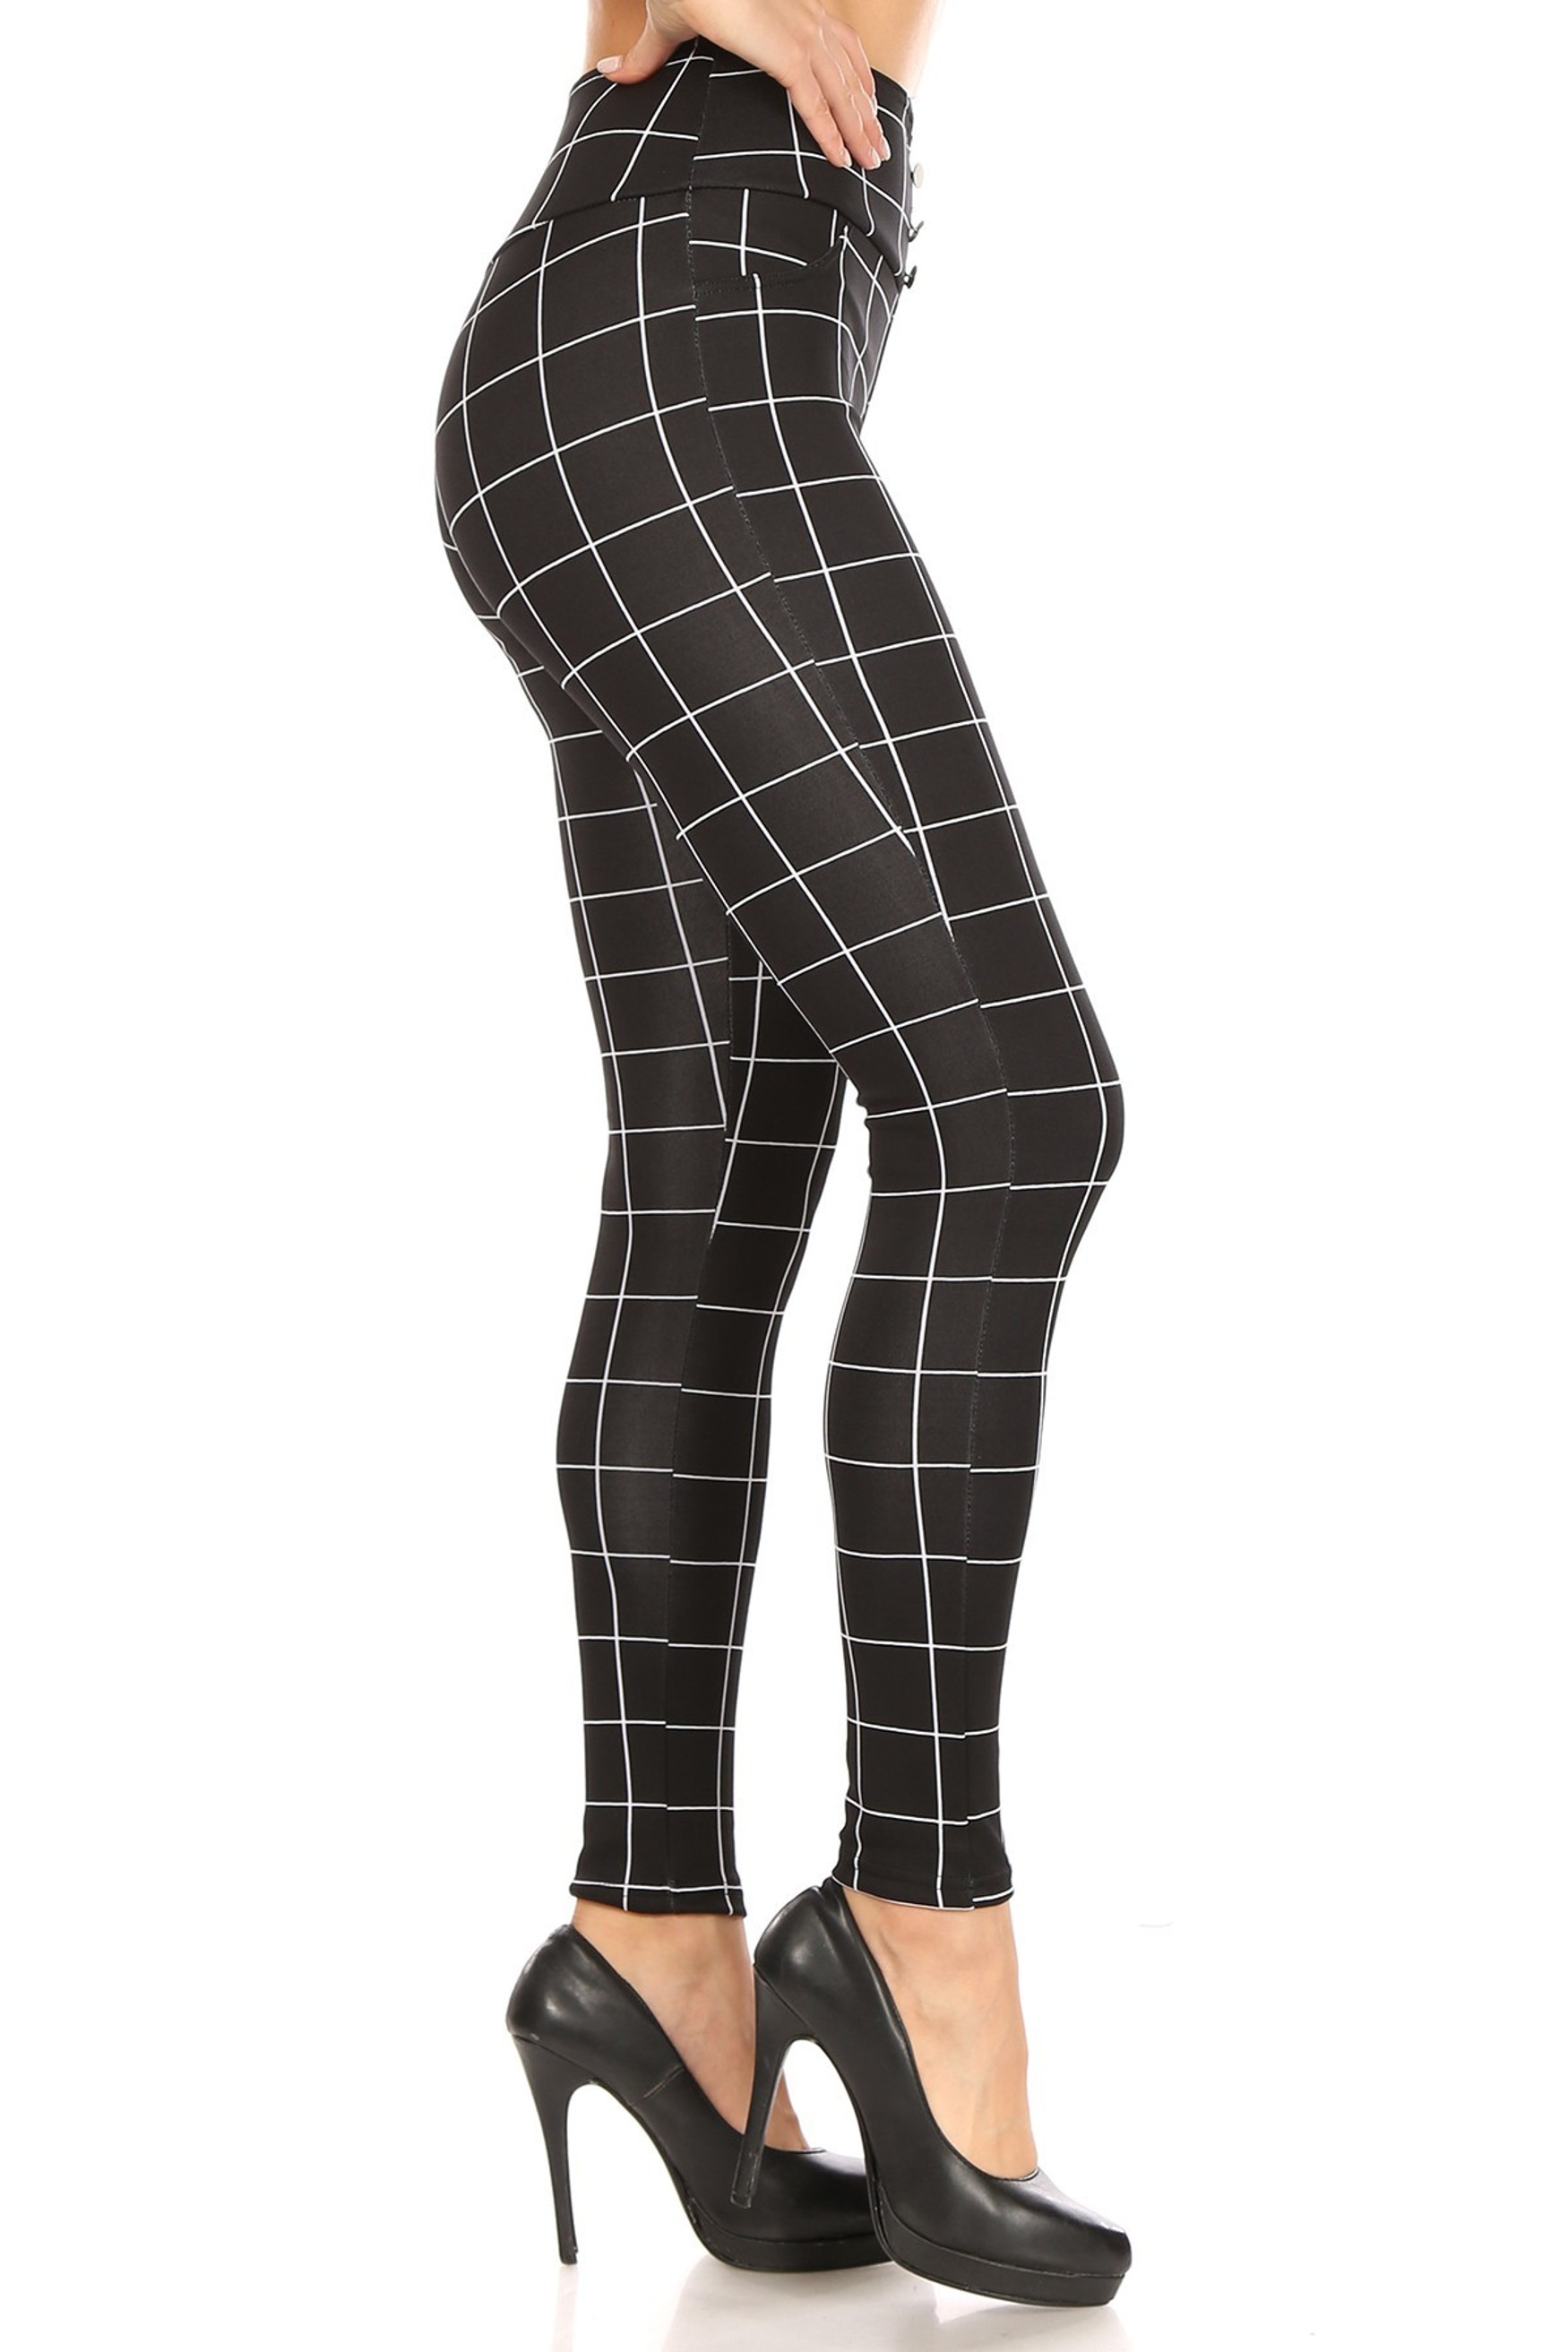 Black and White Grid Print High Waisted Treggings with Button Front